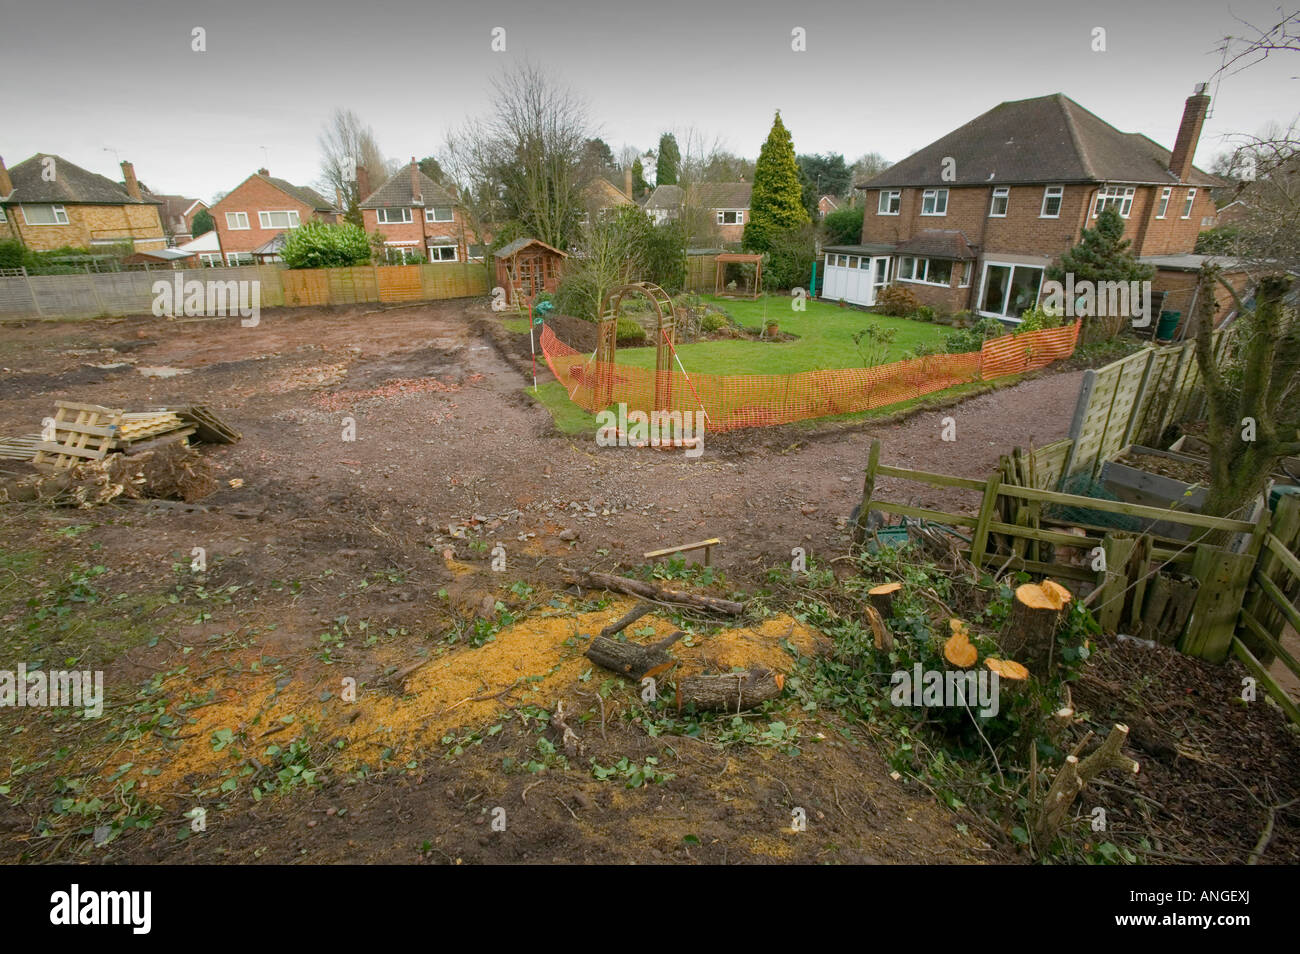 more green space is being lost in the UK as people sell off part of ...